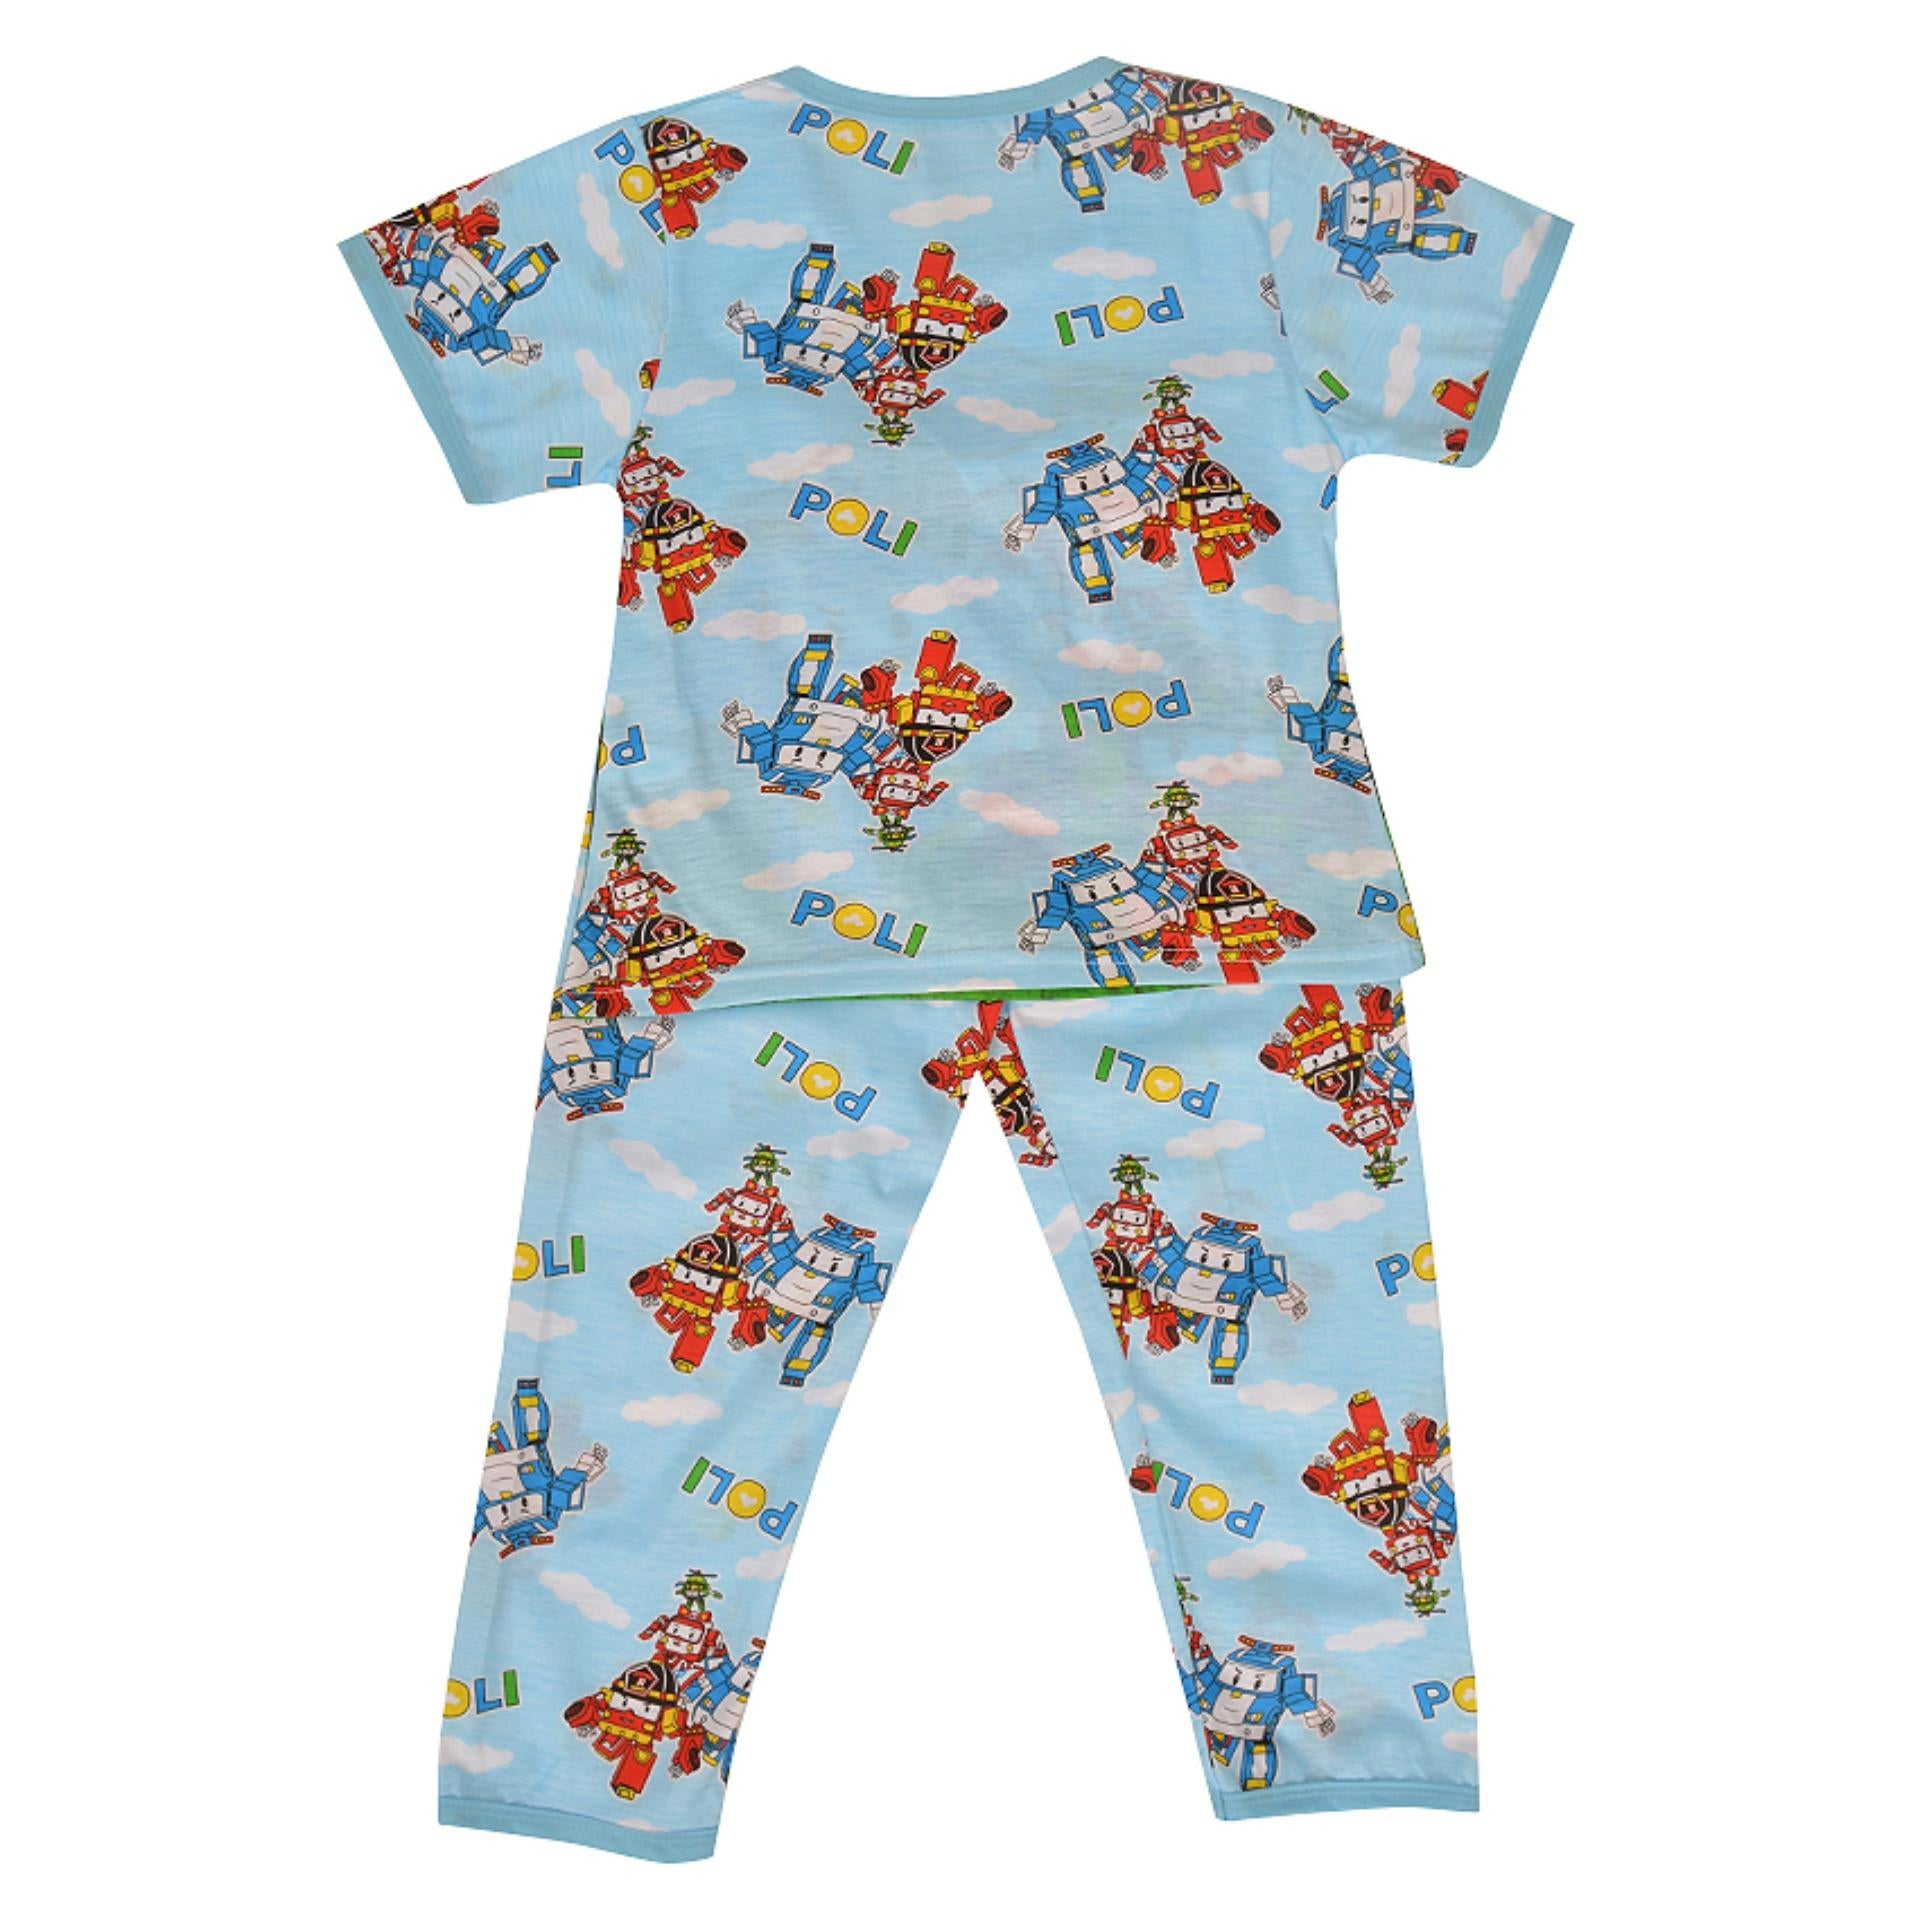 Pack of 2 Pure Cotton Night Suit (Pajama + Tshirt) for Boys - Cars UG-422-6